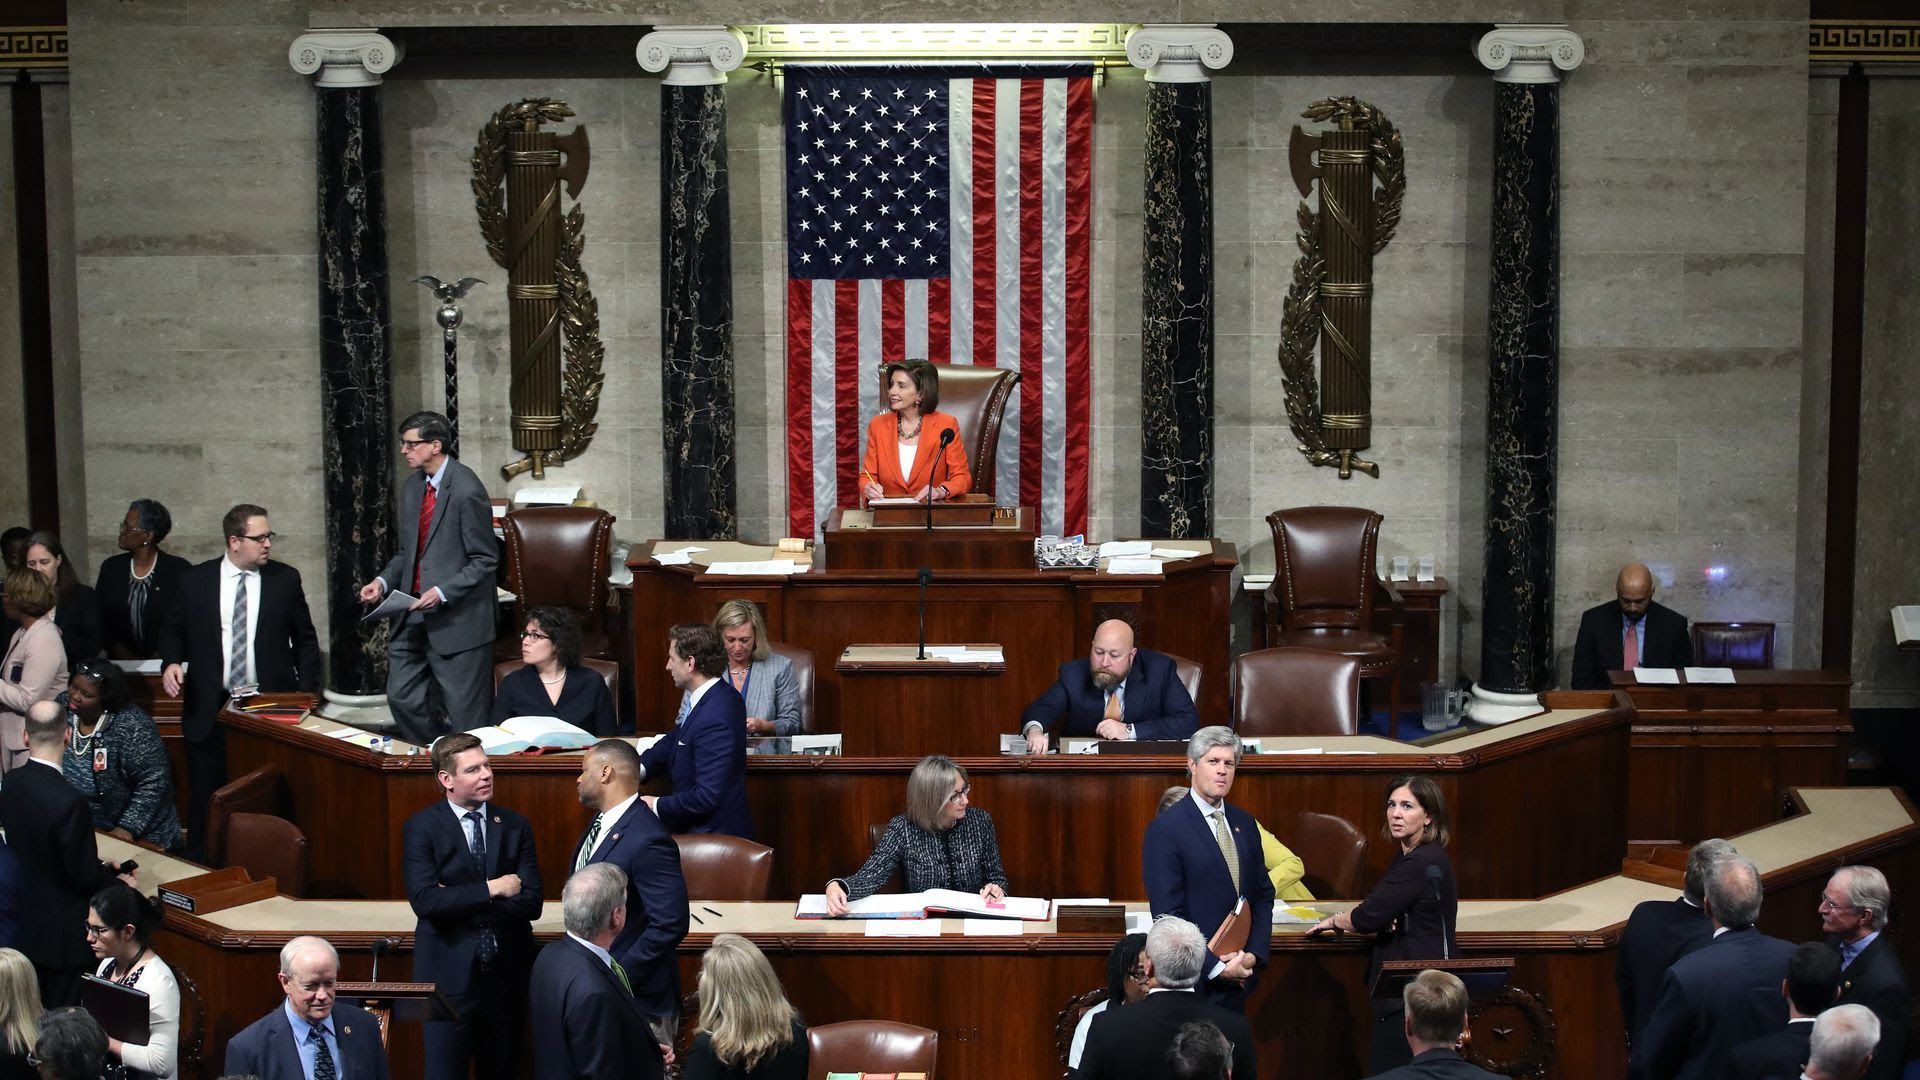 House Speaker Nancy Pelosi presides over the impeachment vote today. Photo: Win McNamee/Getty Images